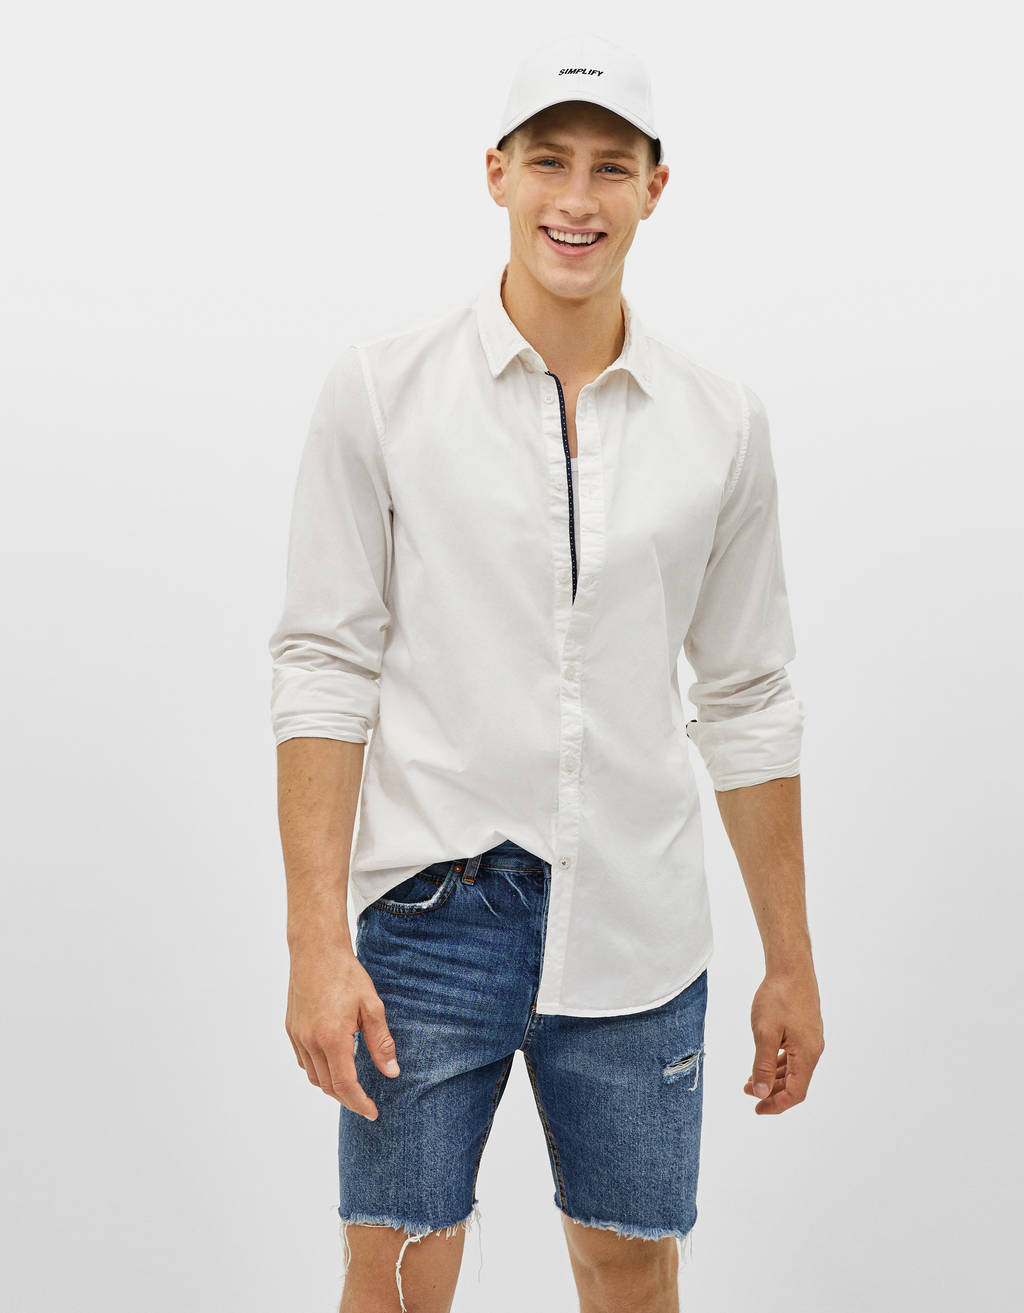 Camisa Regular Fit com manga comprida